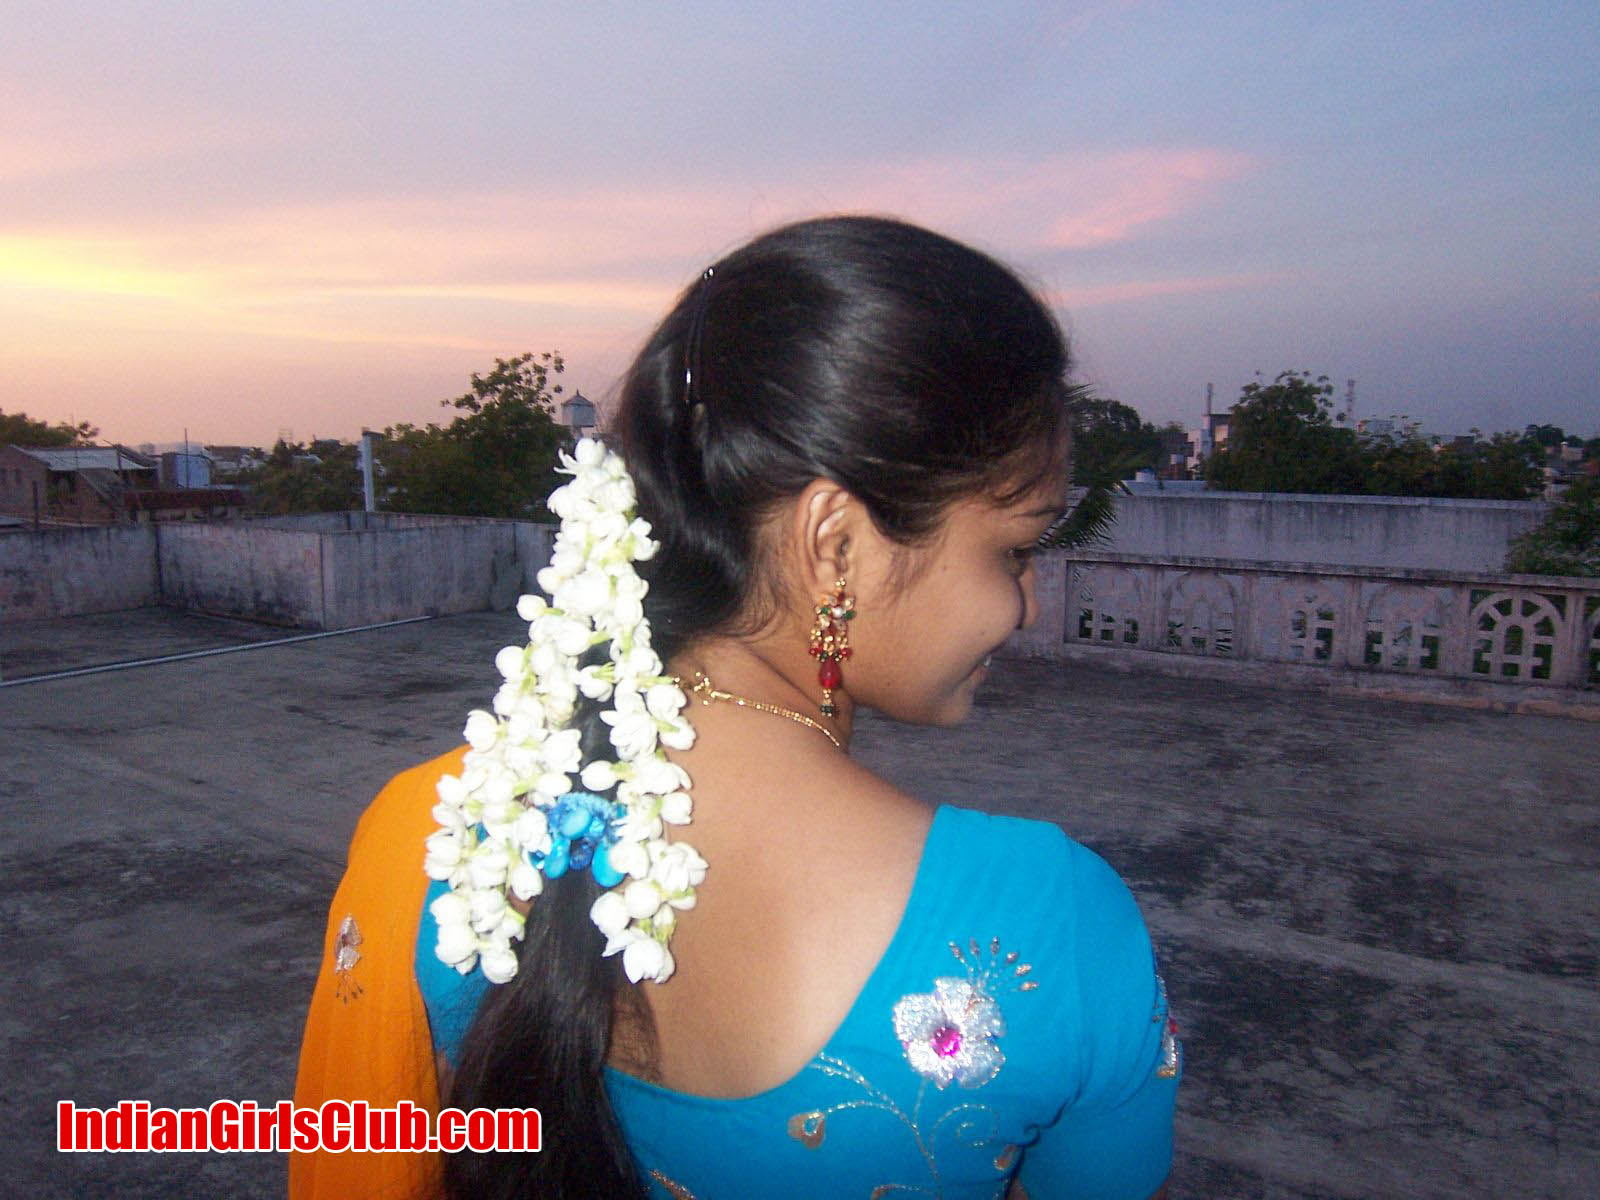 real life girls photos chennai girls pics